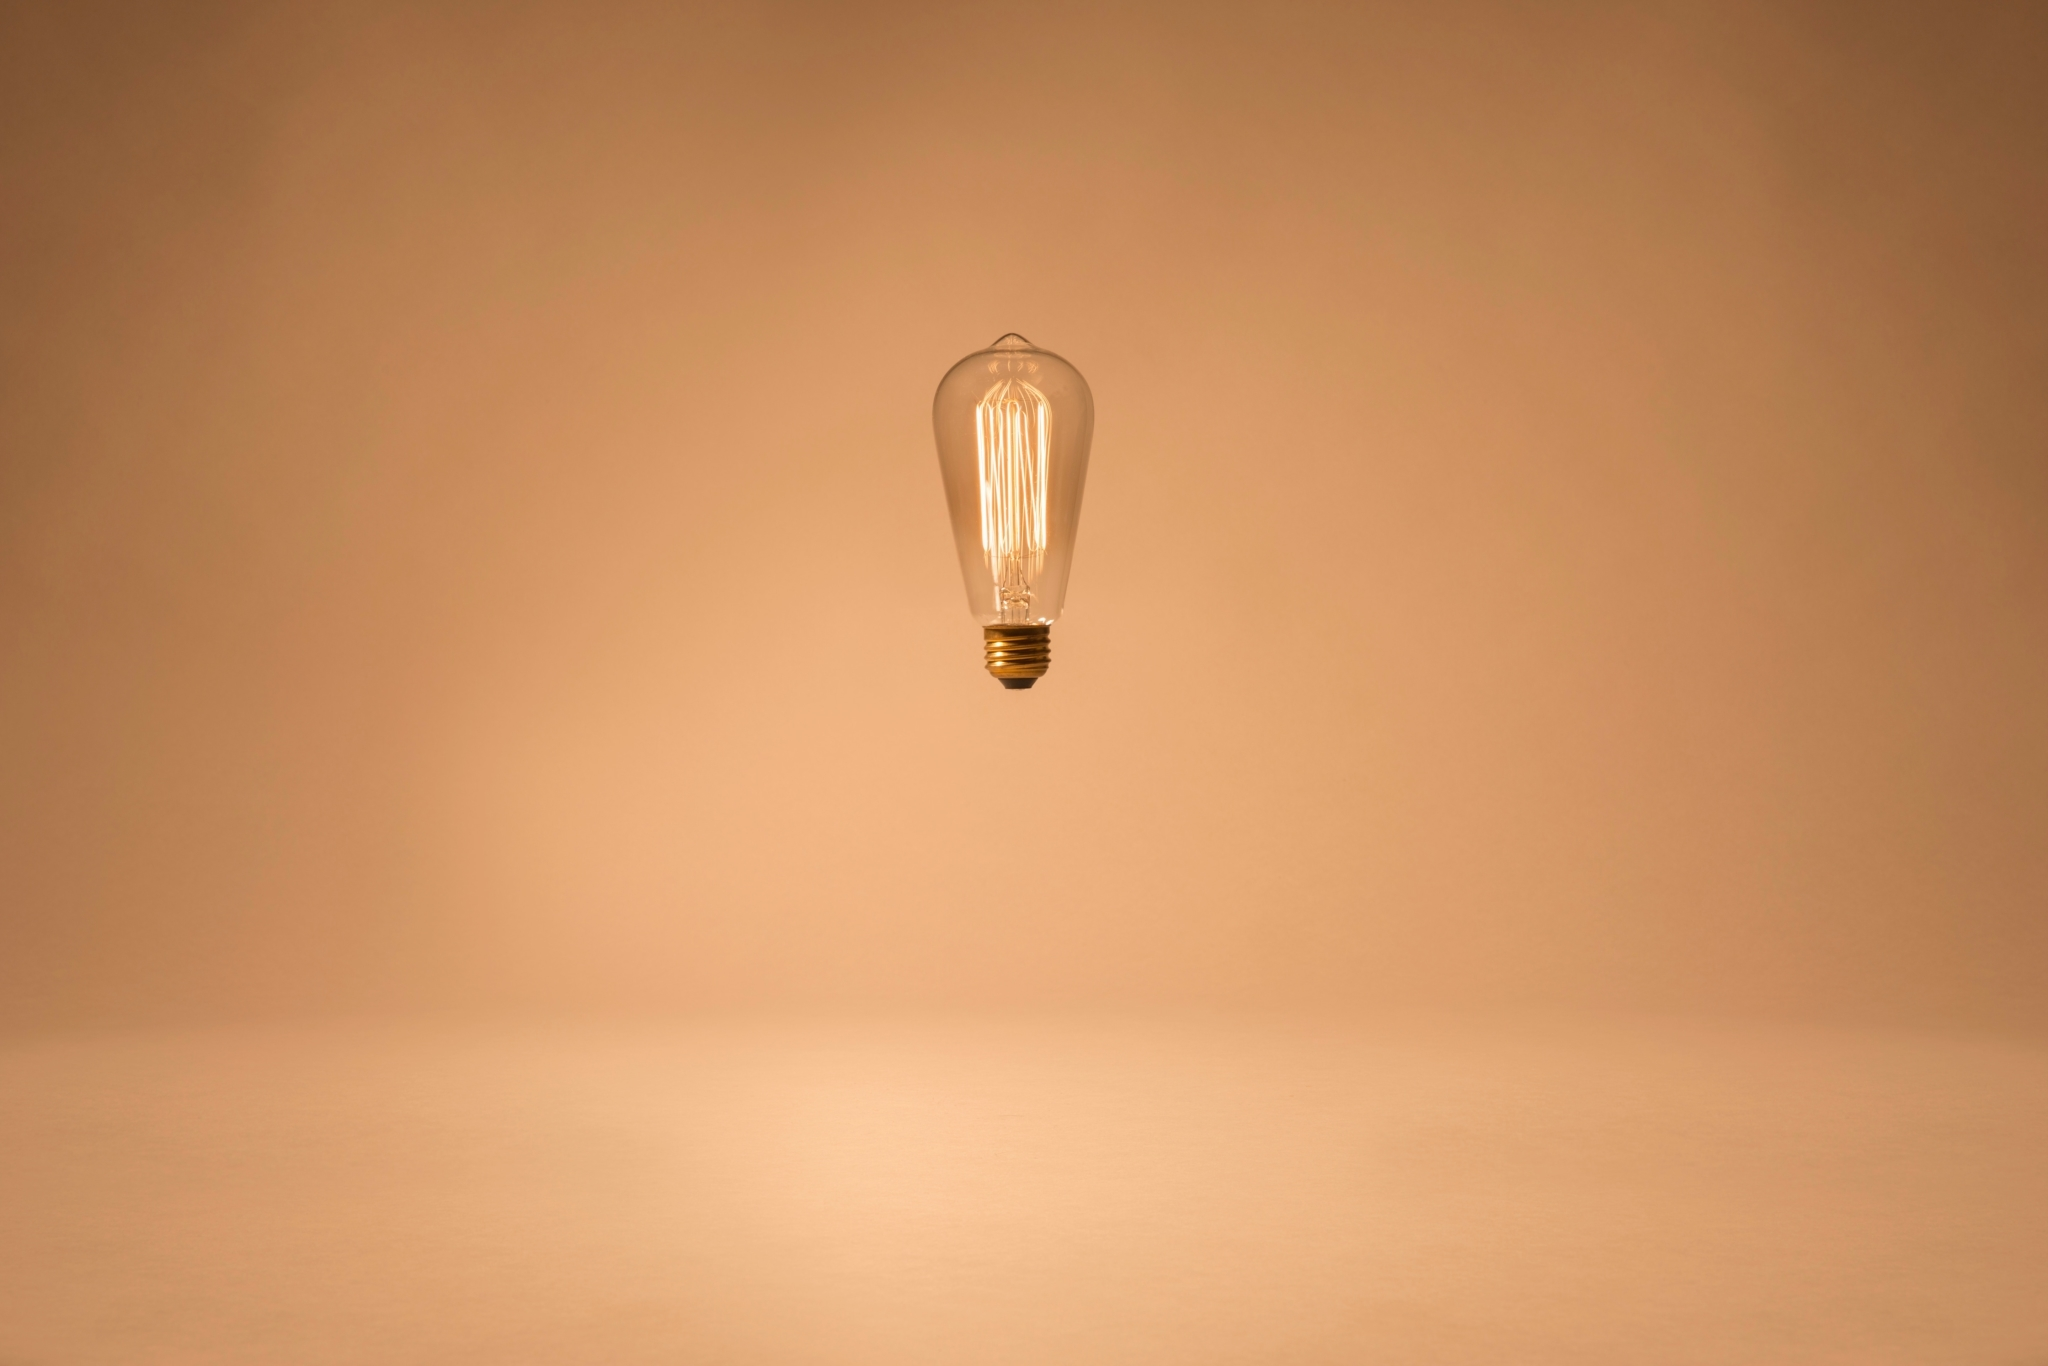 Lightbulb Suspended In The Air